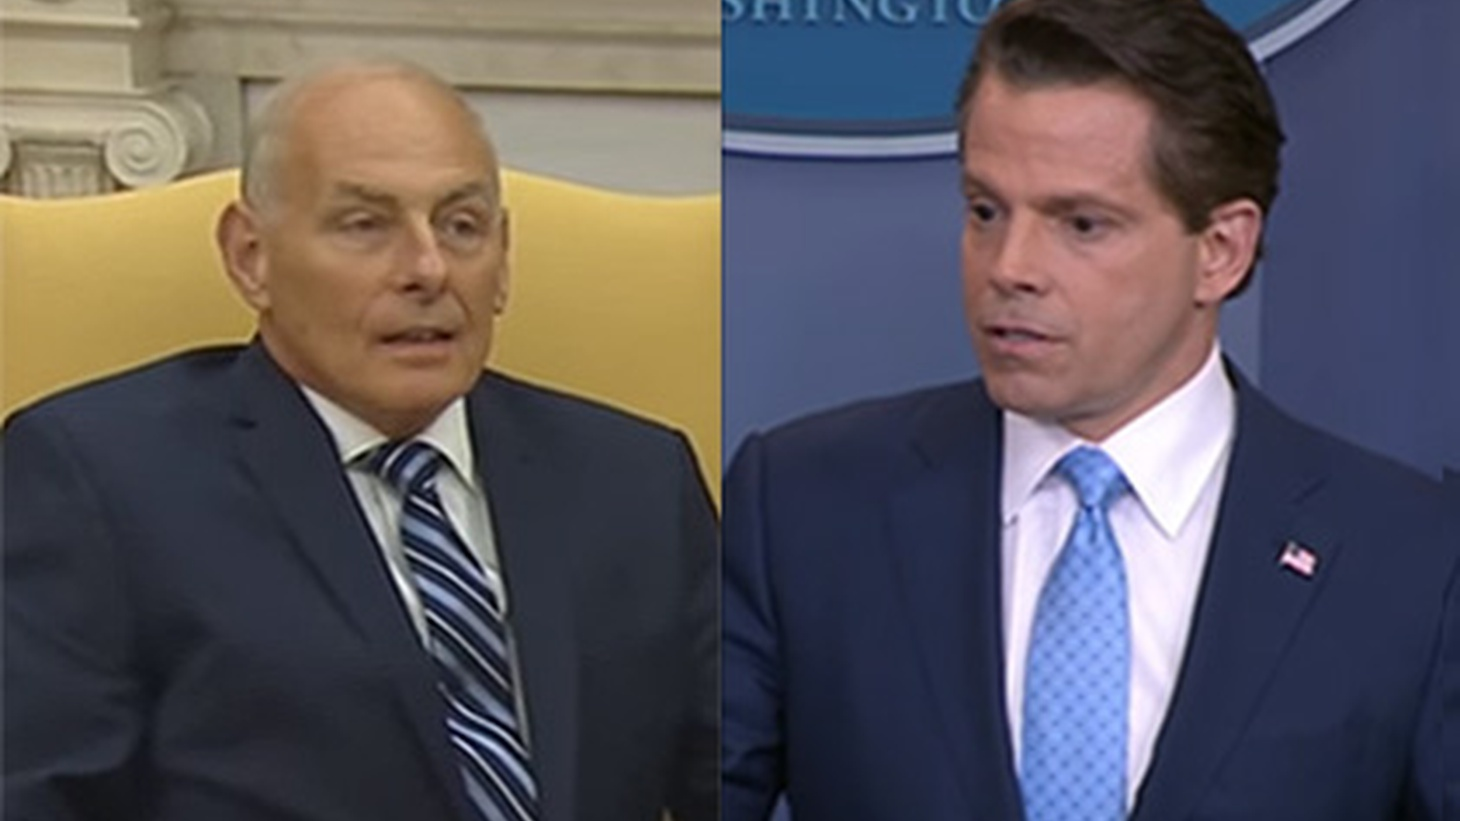 Last week, former Marine General John Kelly was Secretary of Homeland Security. But Friday, he was named White House Chief-of-Staff. Today, he was sworn in to replace Reince Priebus, and President Trump expressed high expectations.